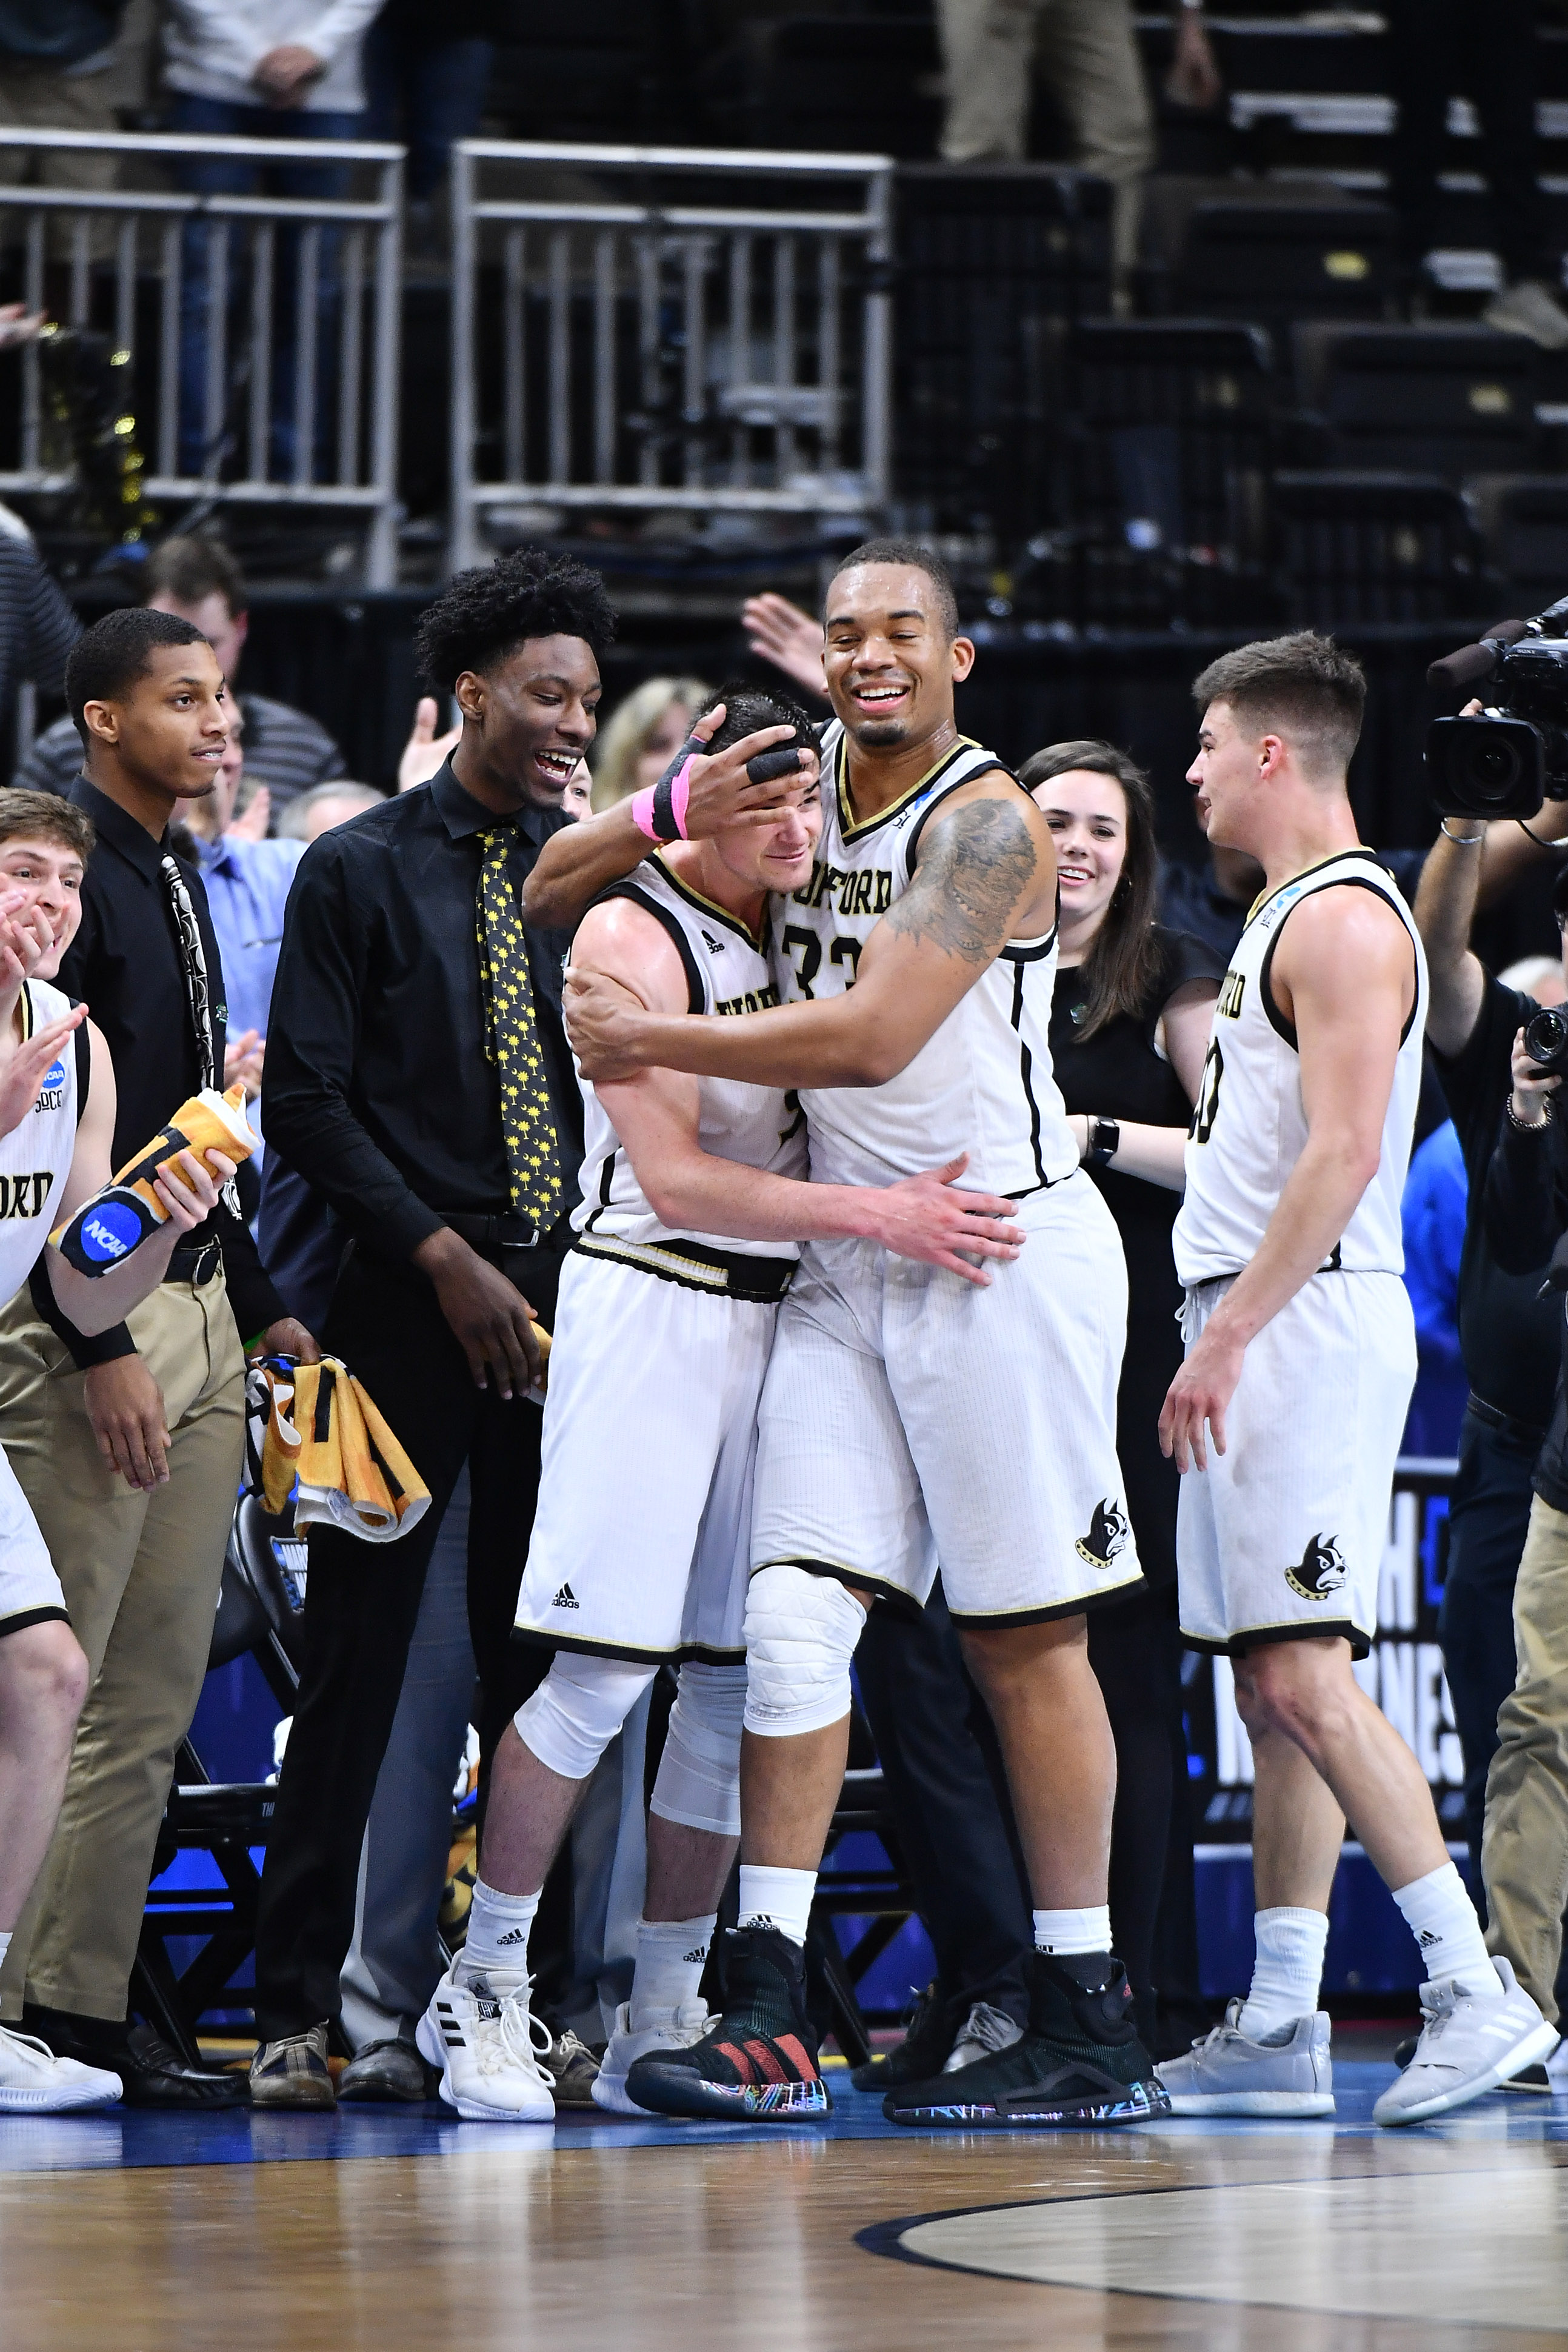 Where is Wofford located? And more quick facts about the NCAA tournament's non-Cinderella